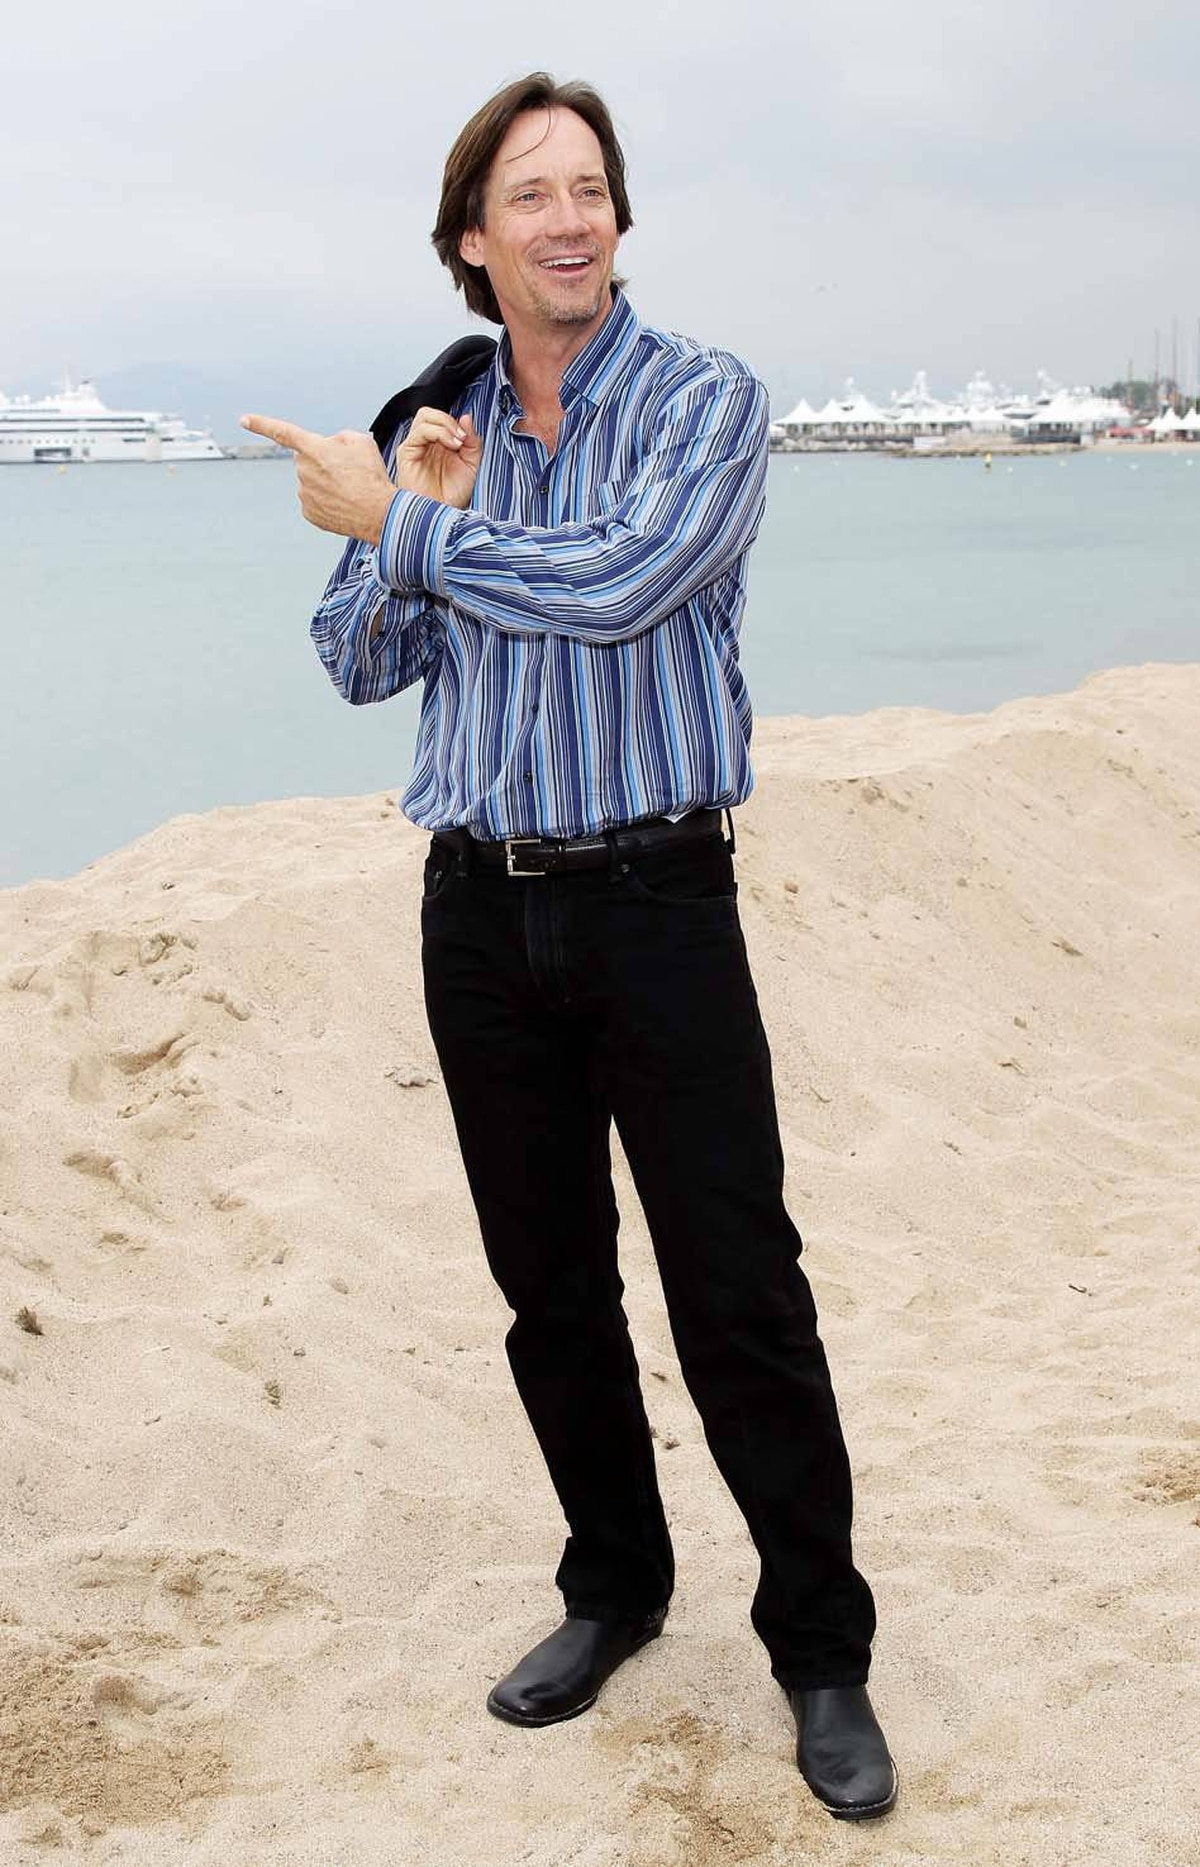 It's Friday, and Kevin Sorbo is at the Cannes Film Festival. The end.